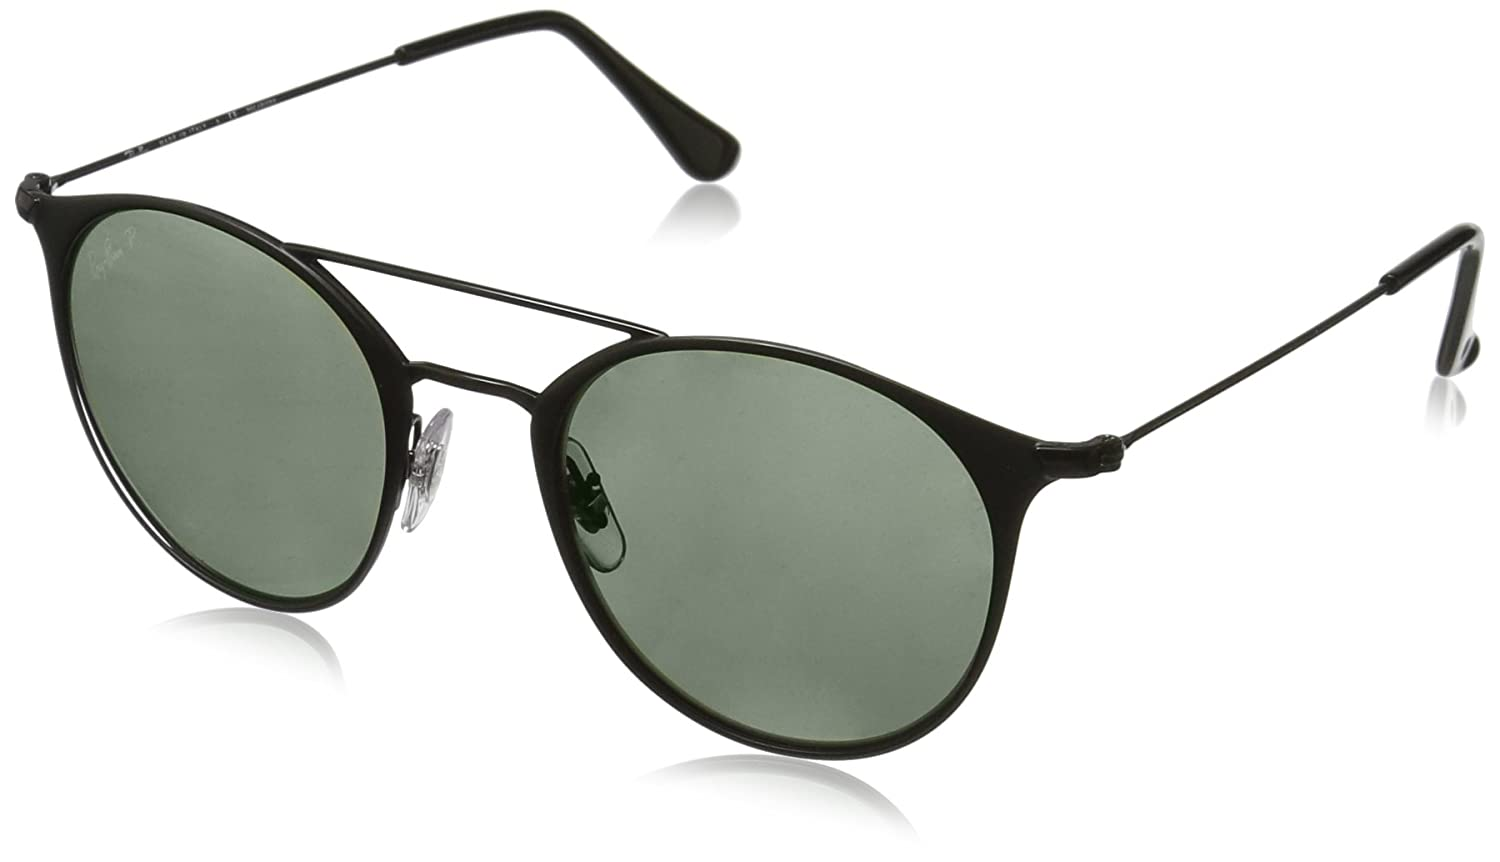 6b0c507704 Amazon.com  Ray-Ban Steel Unisex Polarized Round Sunglasses